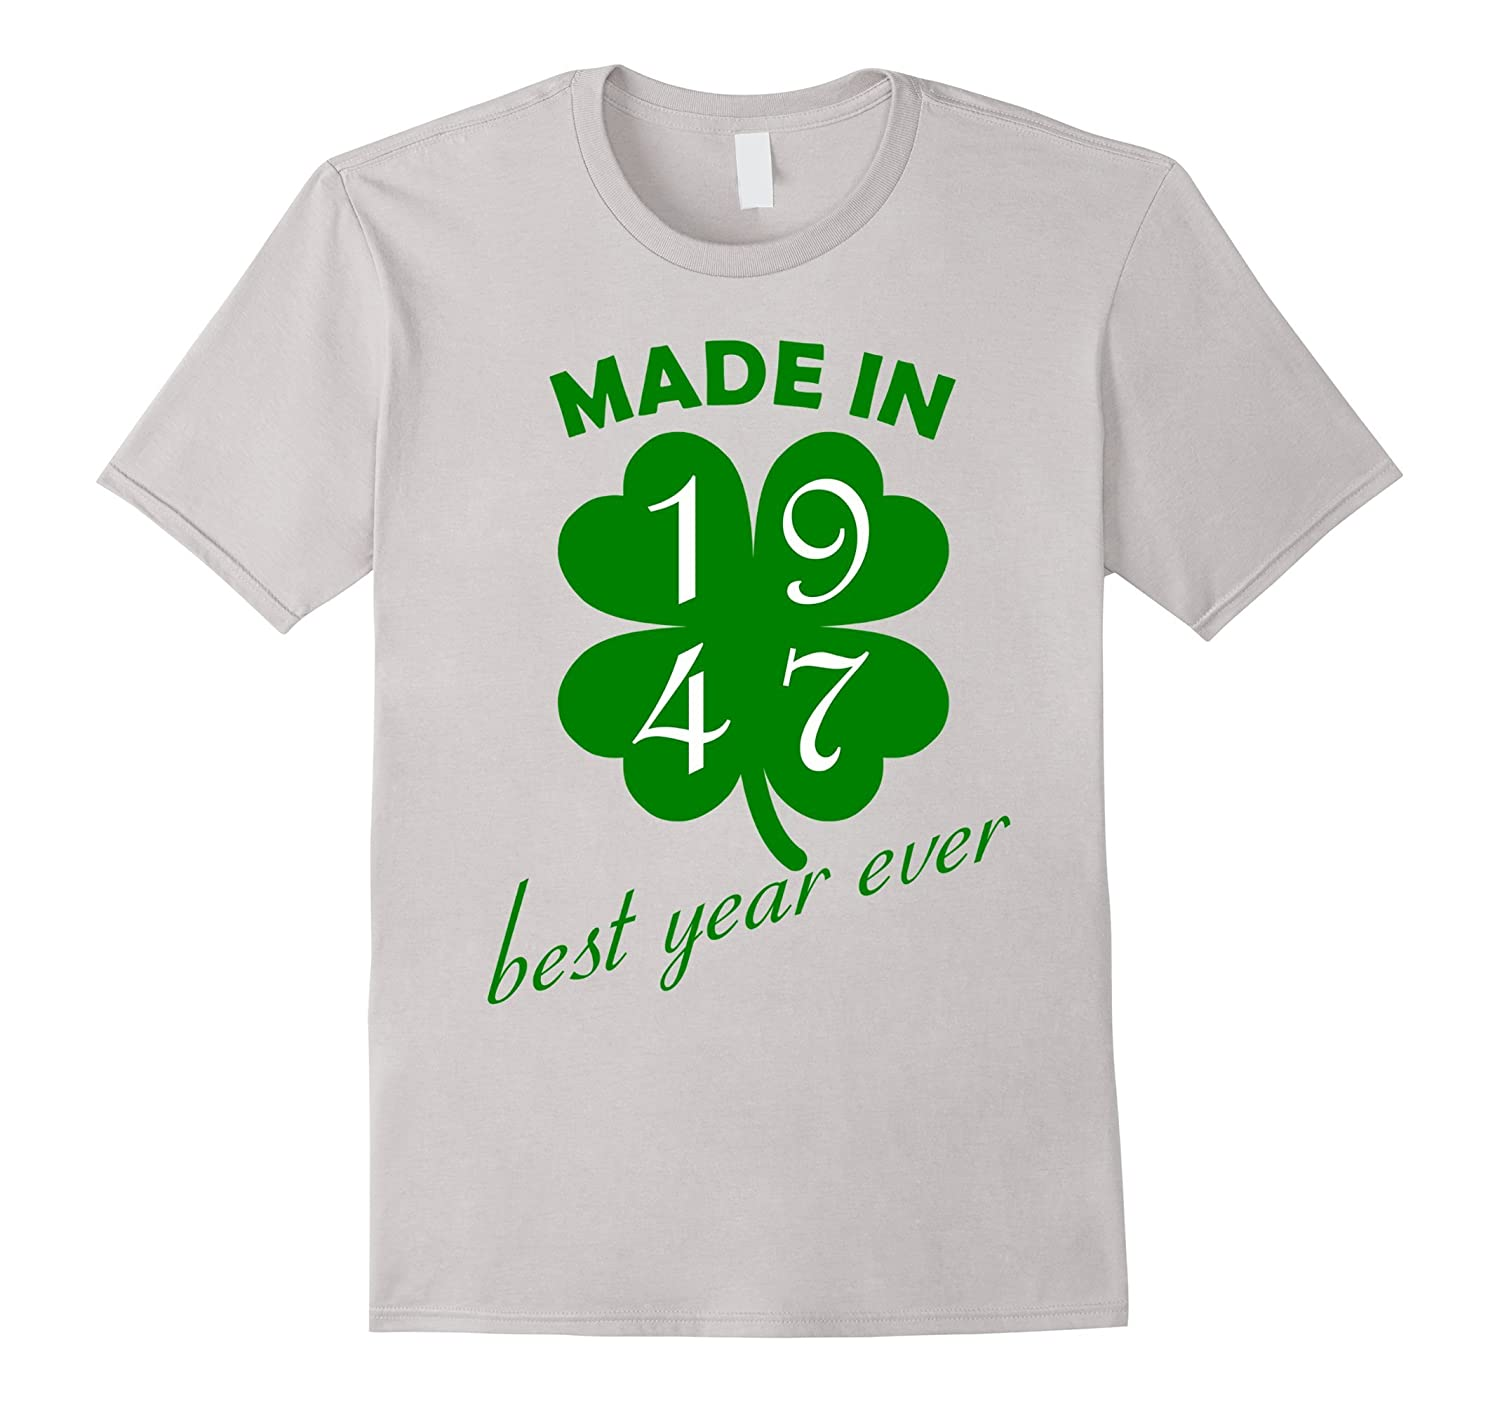 70th Birthday Vintage Made In 1947 Gift Ideas Man T Shirt BN